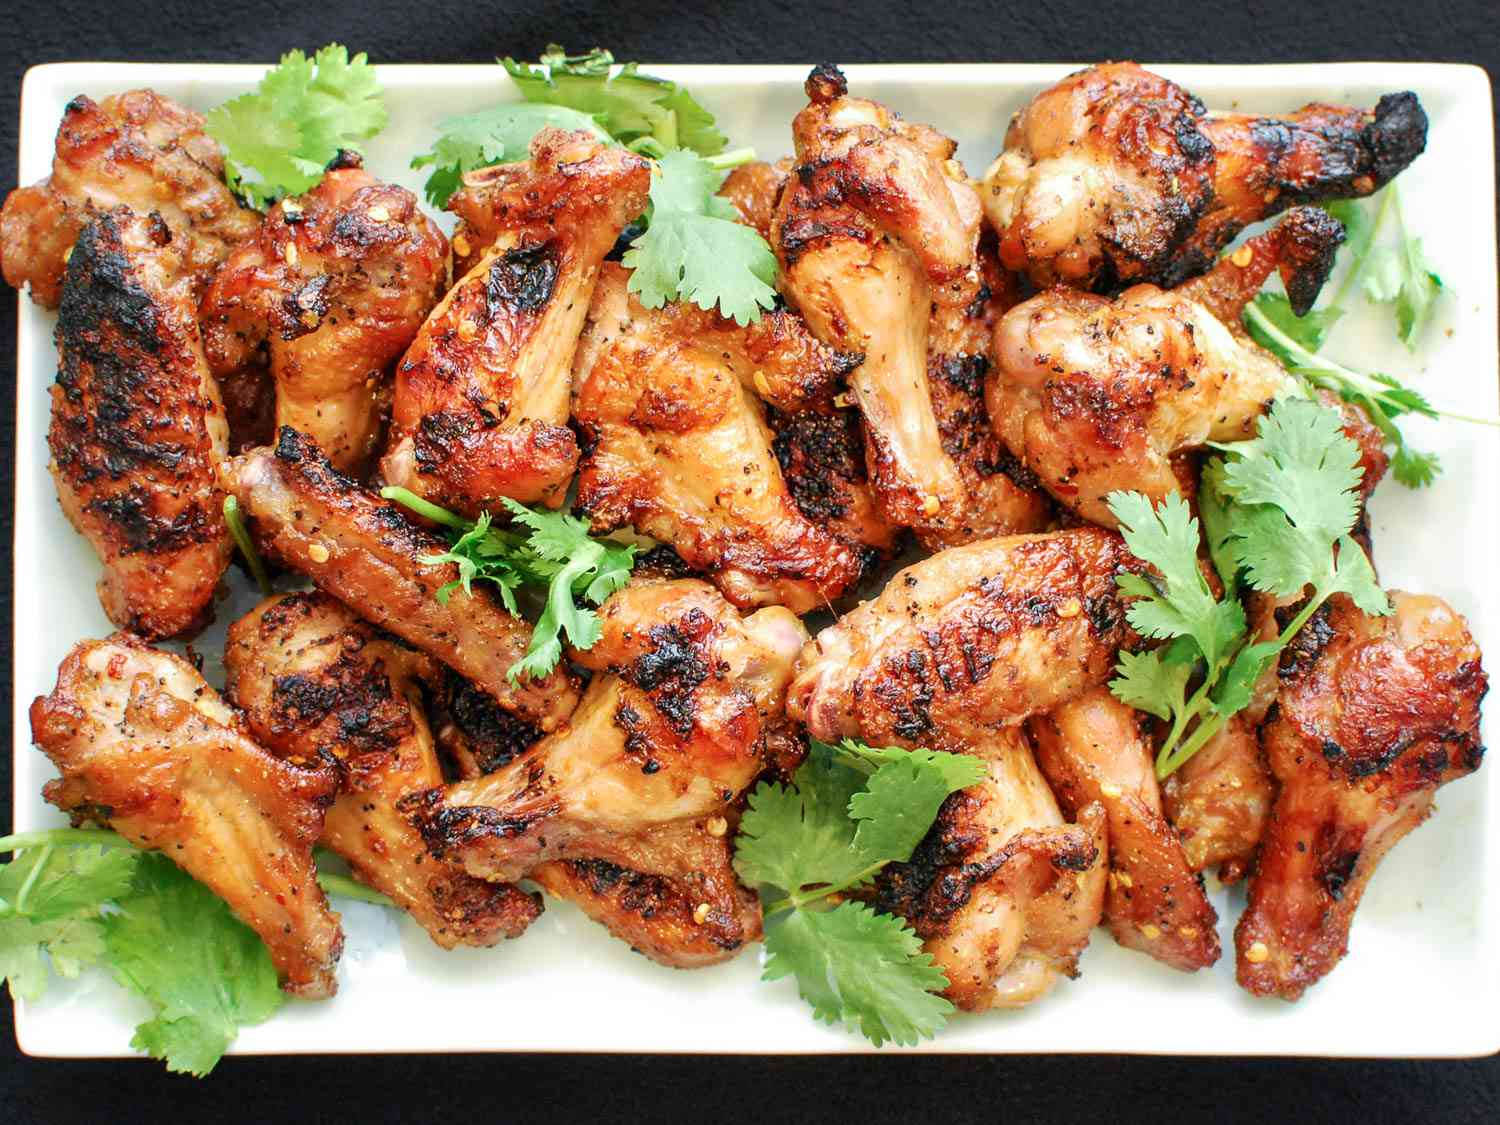 Grilled chicken wings marinated in soy and fish sauce, scattered with cilantro leaves